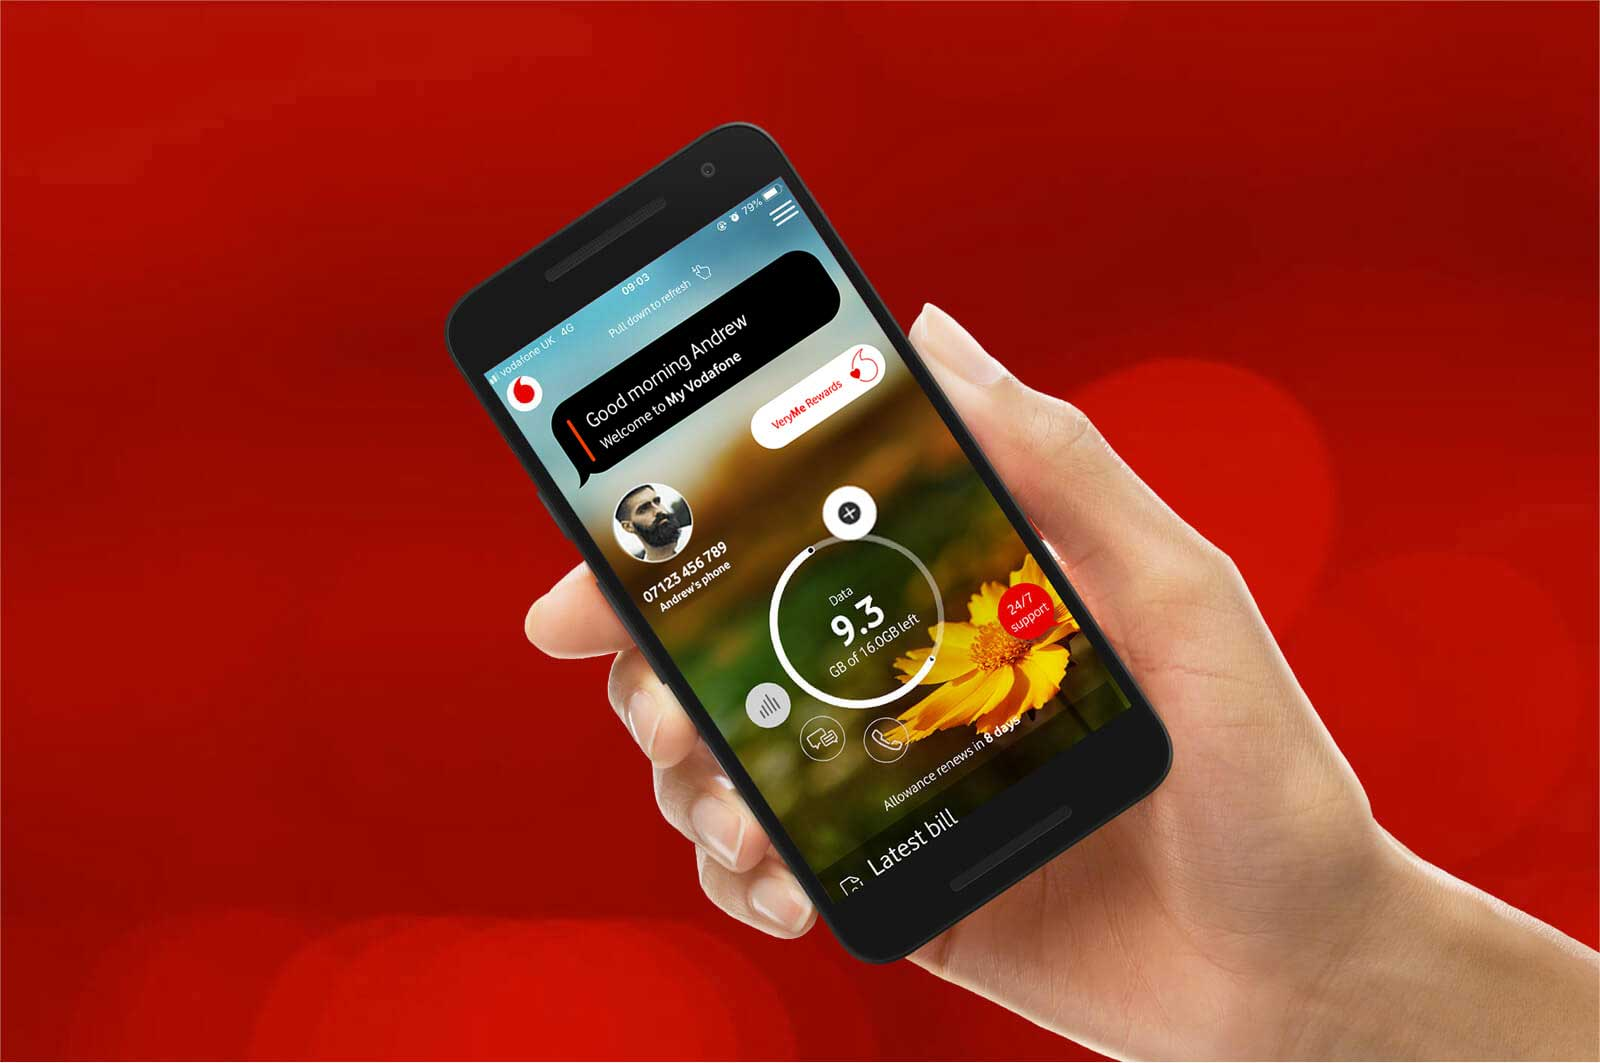 Getting started with Vodafone mobile